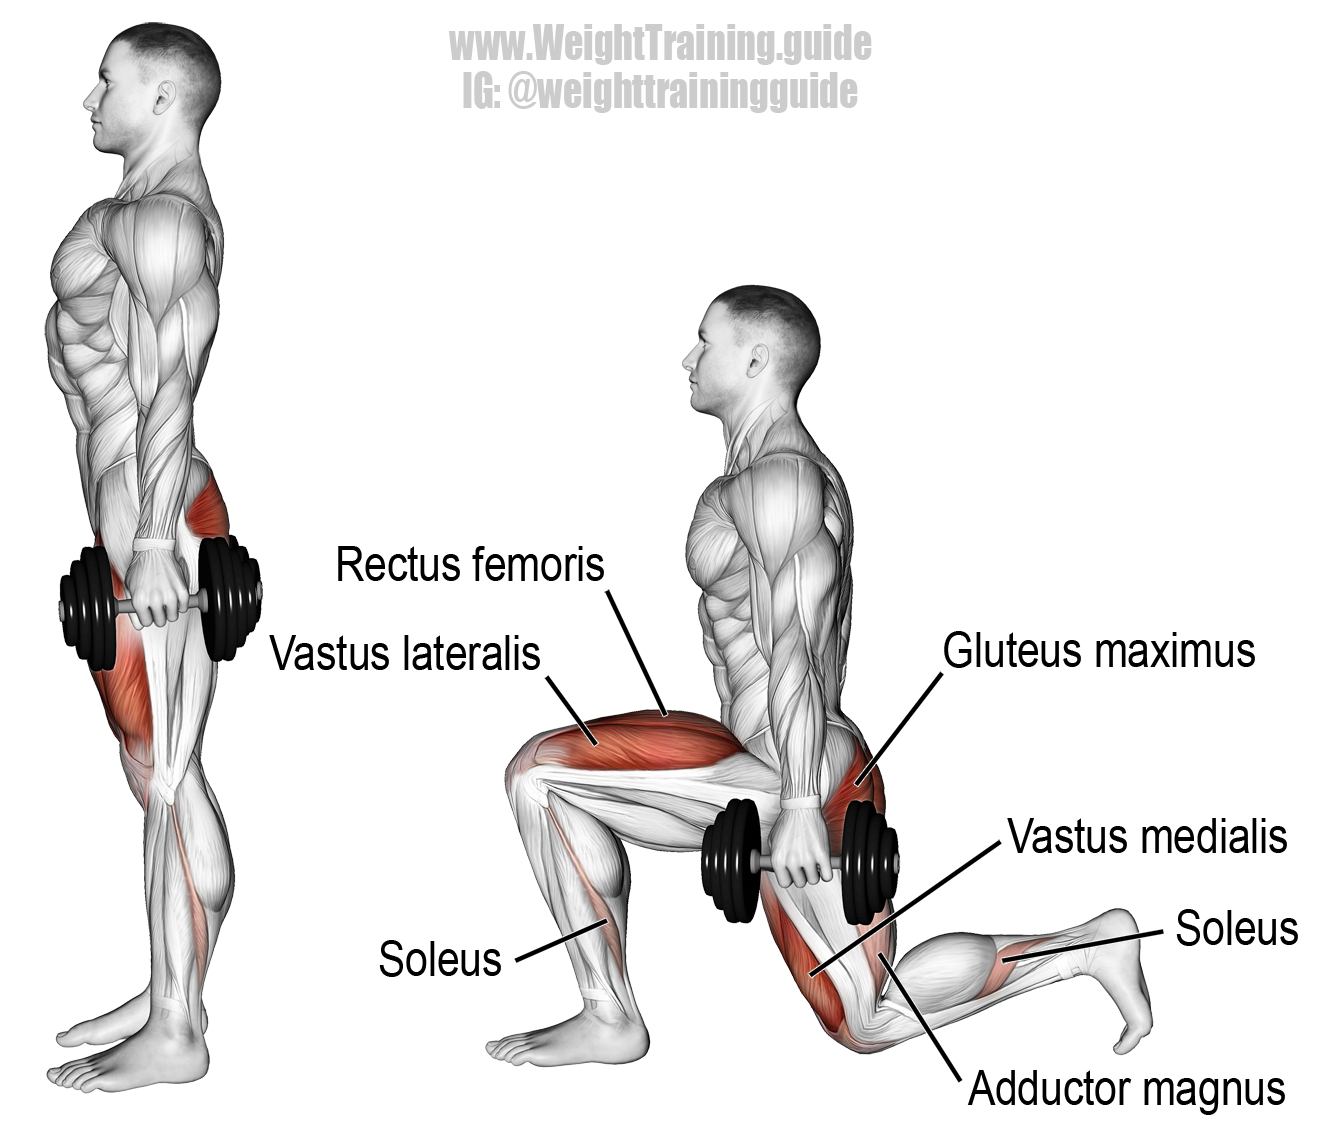 dumbbell lunge a highly recommended compound exercise